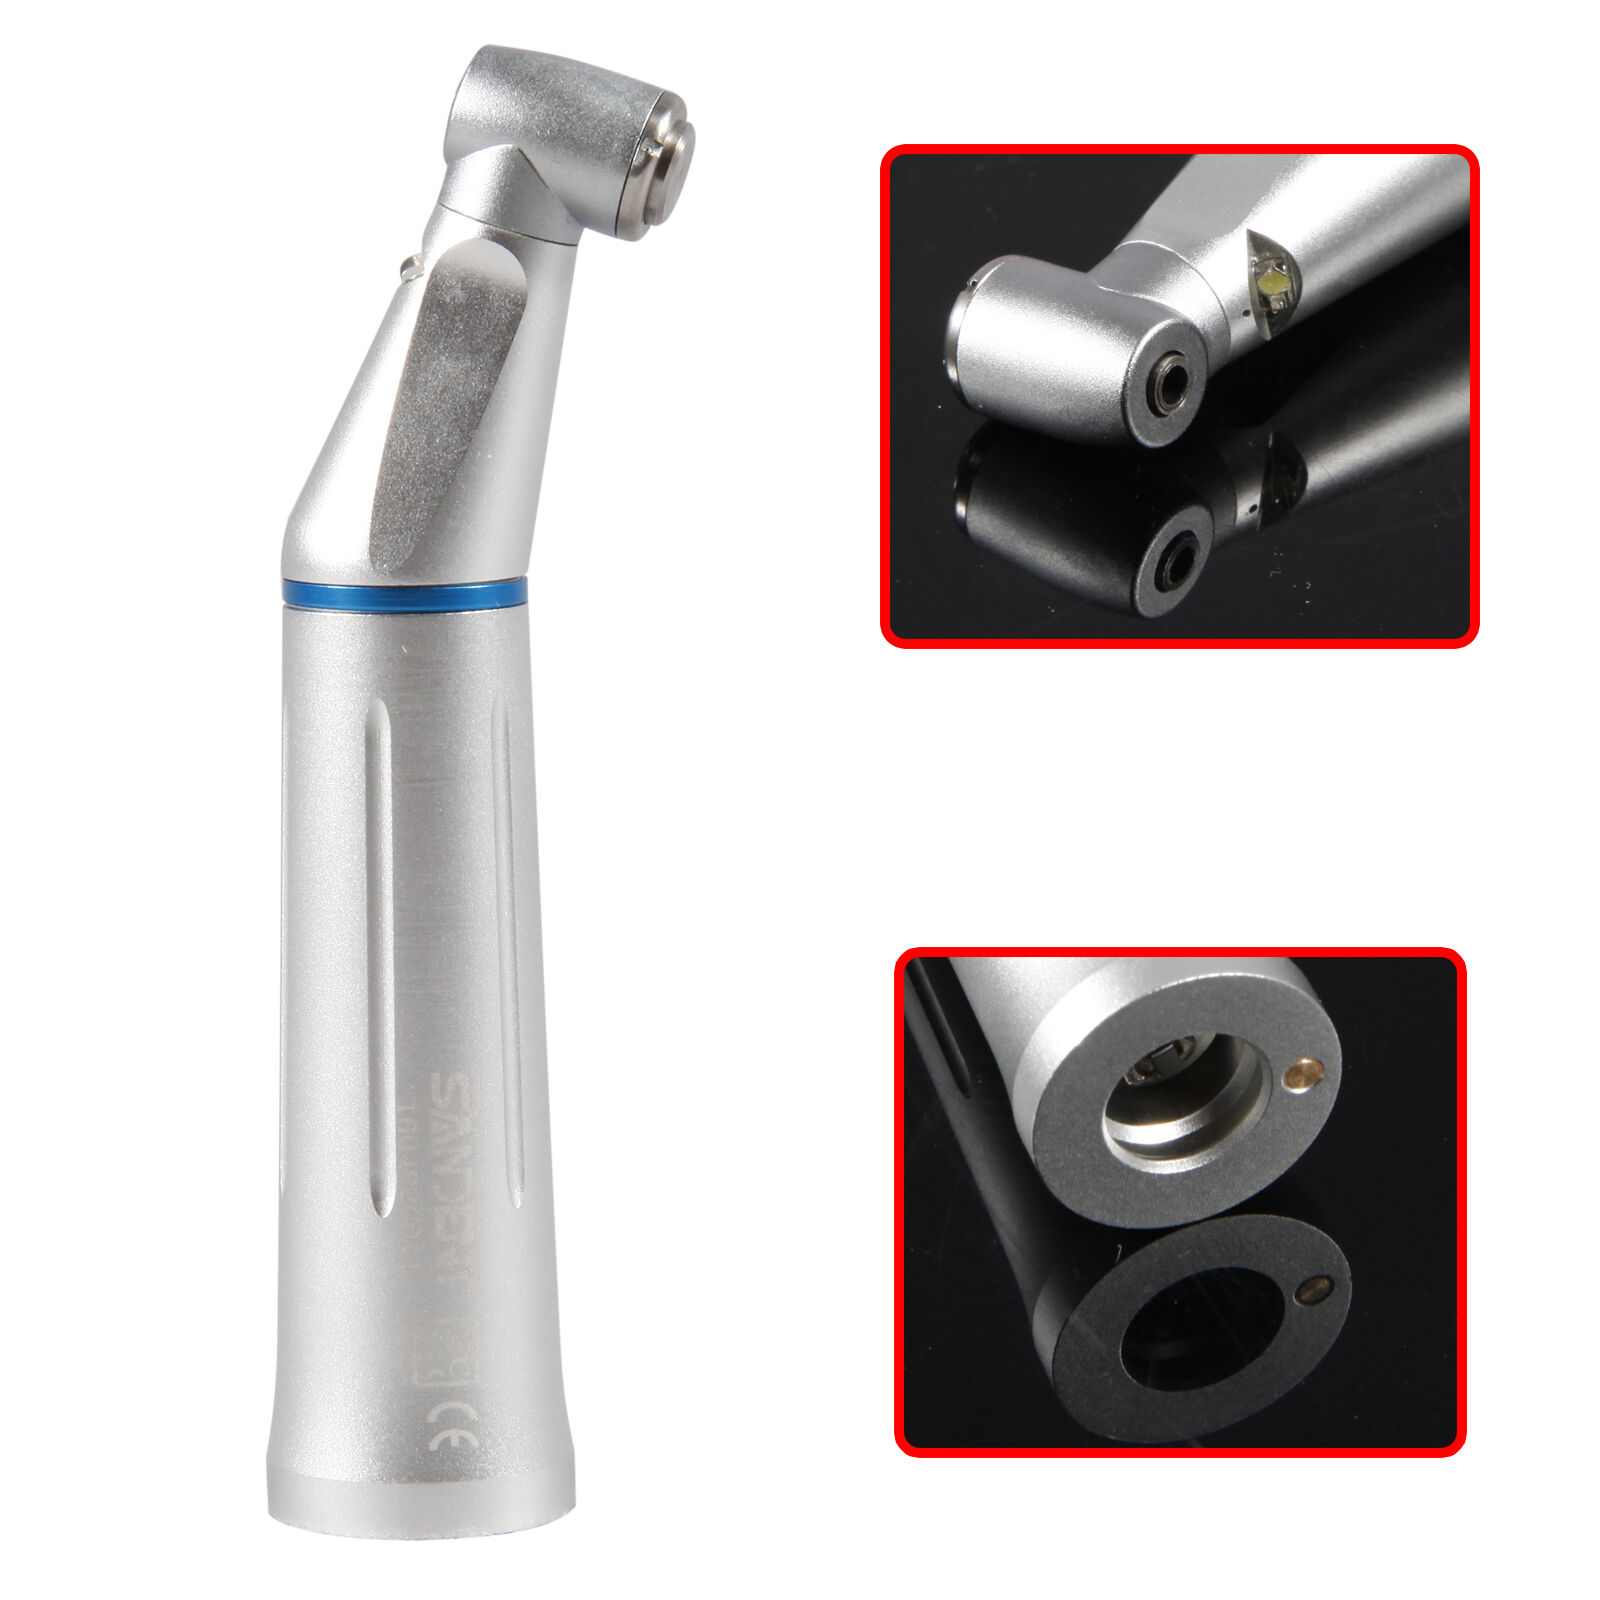 Dental LED Slow Low Speed Fiber Optic Contra Angle Handpiece Inner Water THYDental LED Slow Low Speed Fiber Optic Contra Angle Handpiece Inner Water THY